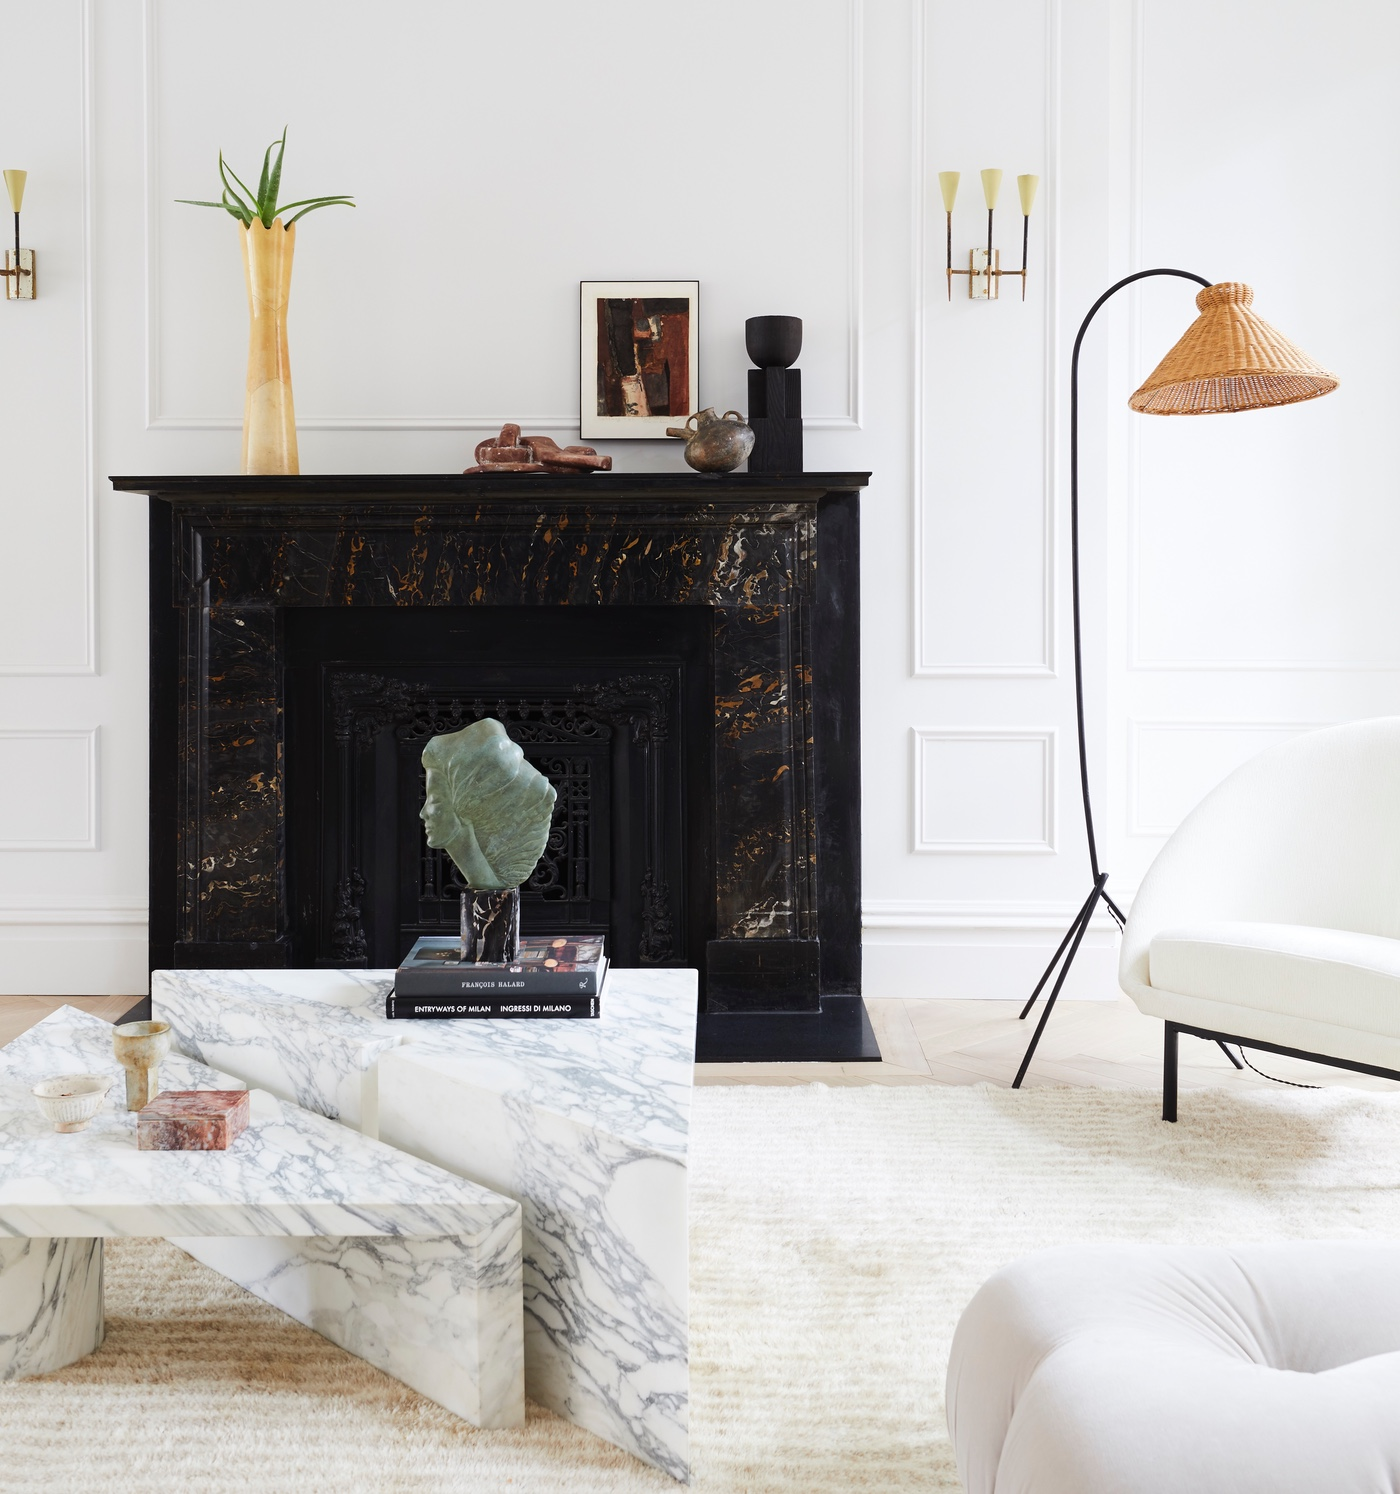 Simple Fireplace Styling Tips to Bring Your Space to Life